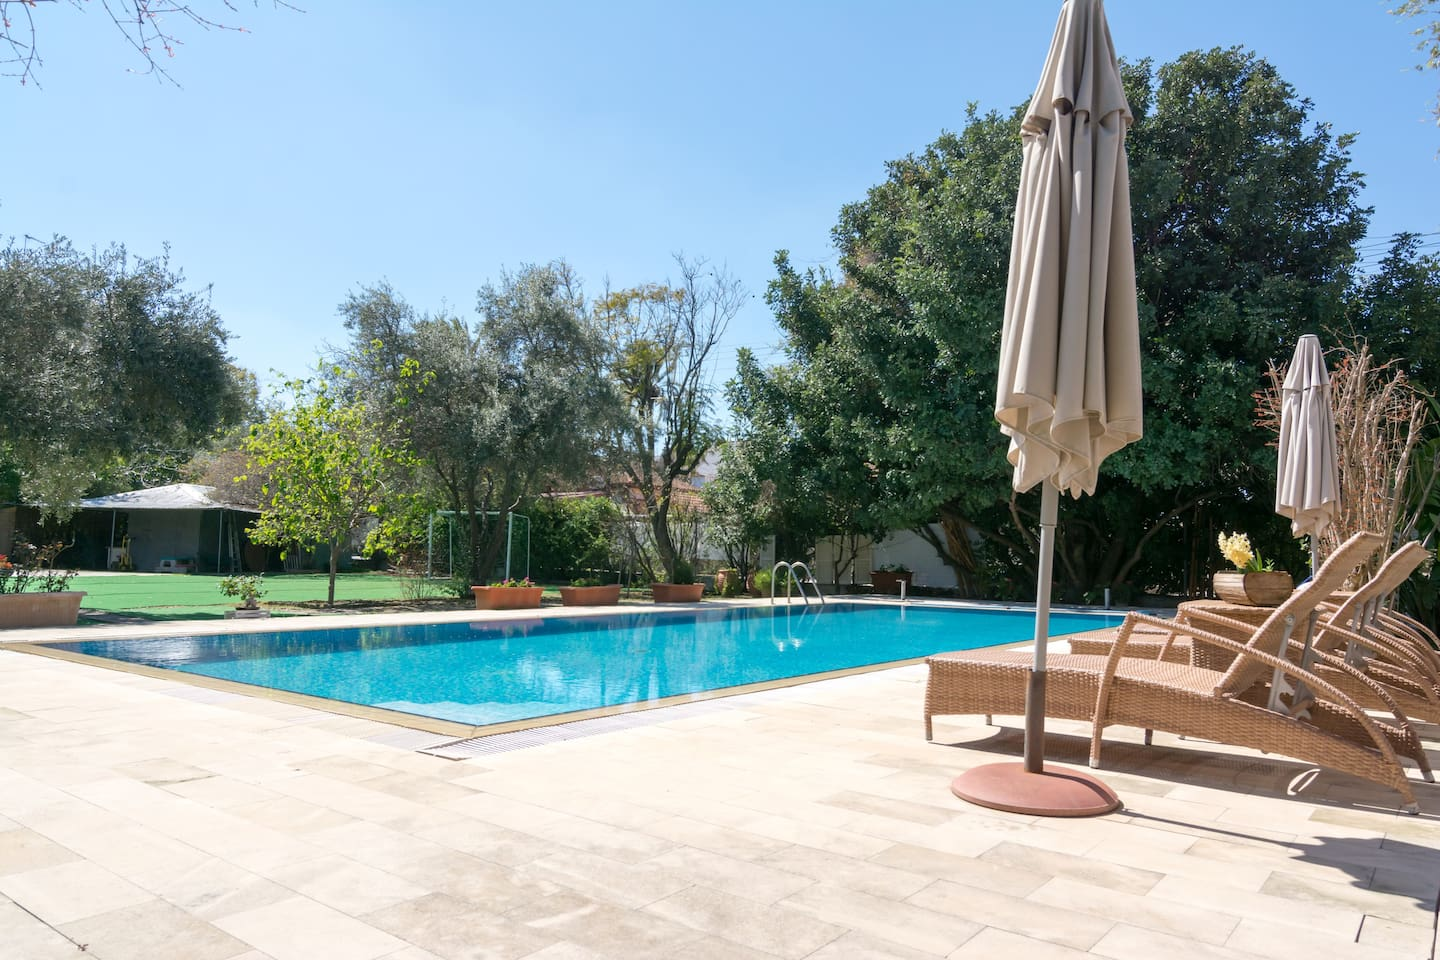 Swimming pool . In a shared outdoor space of 3 plots of land next to the hosts house. Use is not shared when booked. Rent is for a maximum number of 4 people and is only 5 euros per hour.